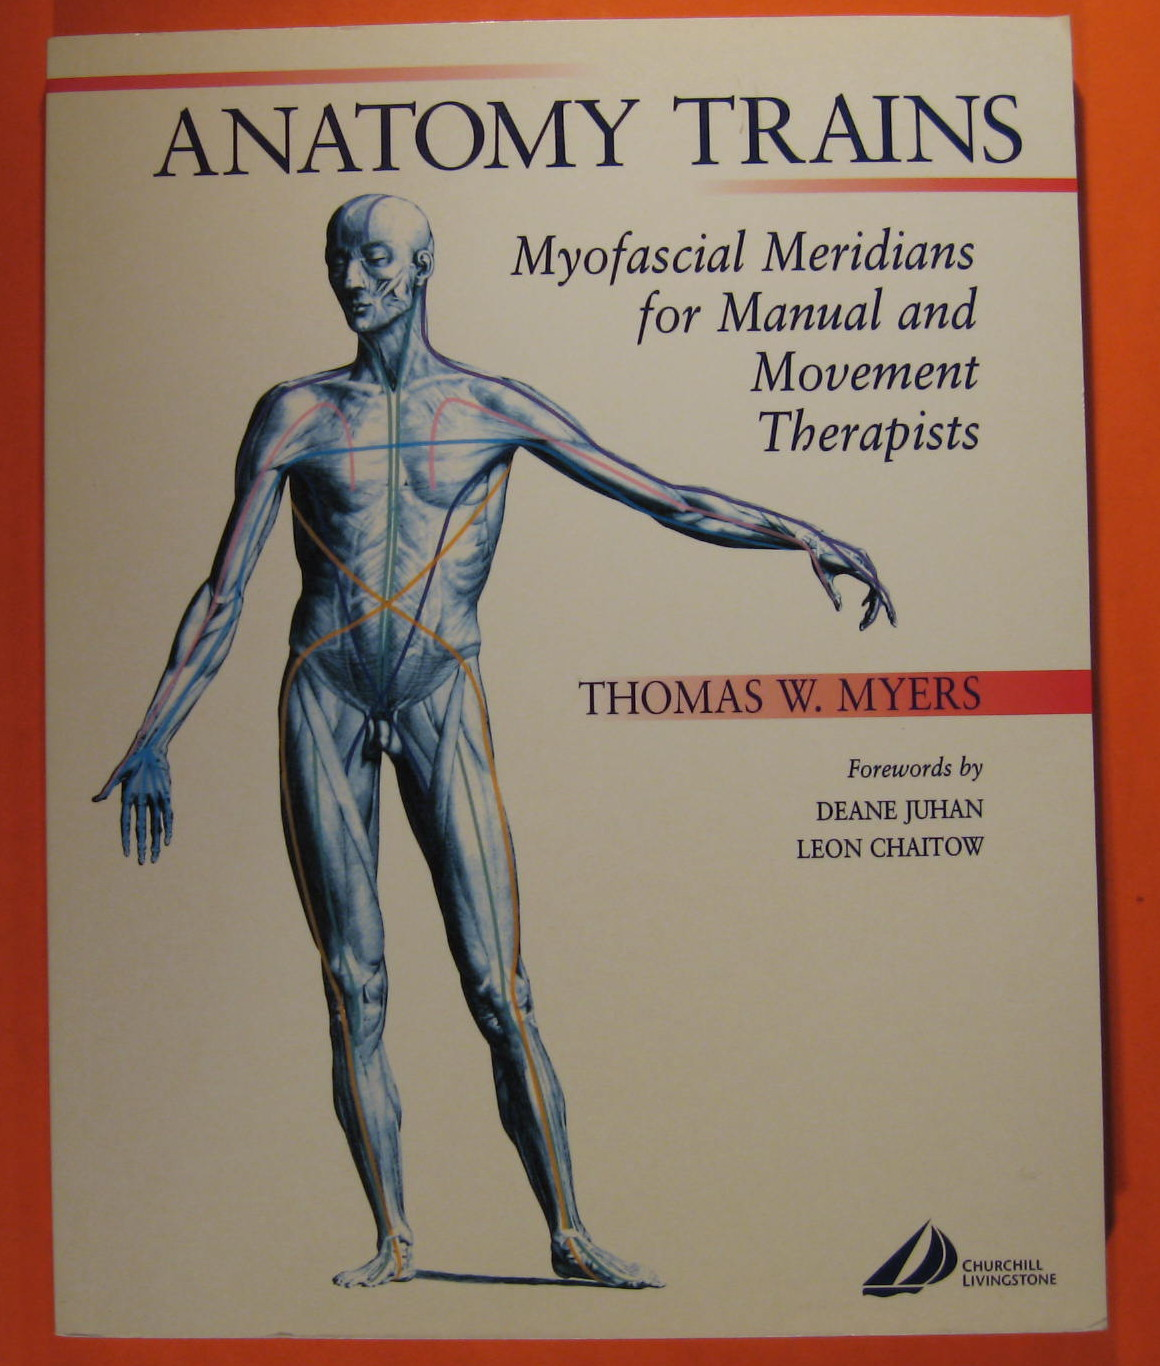 The Anatomy Trains Myofascial Meridians for Manual and Movement